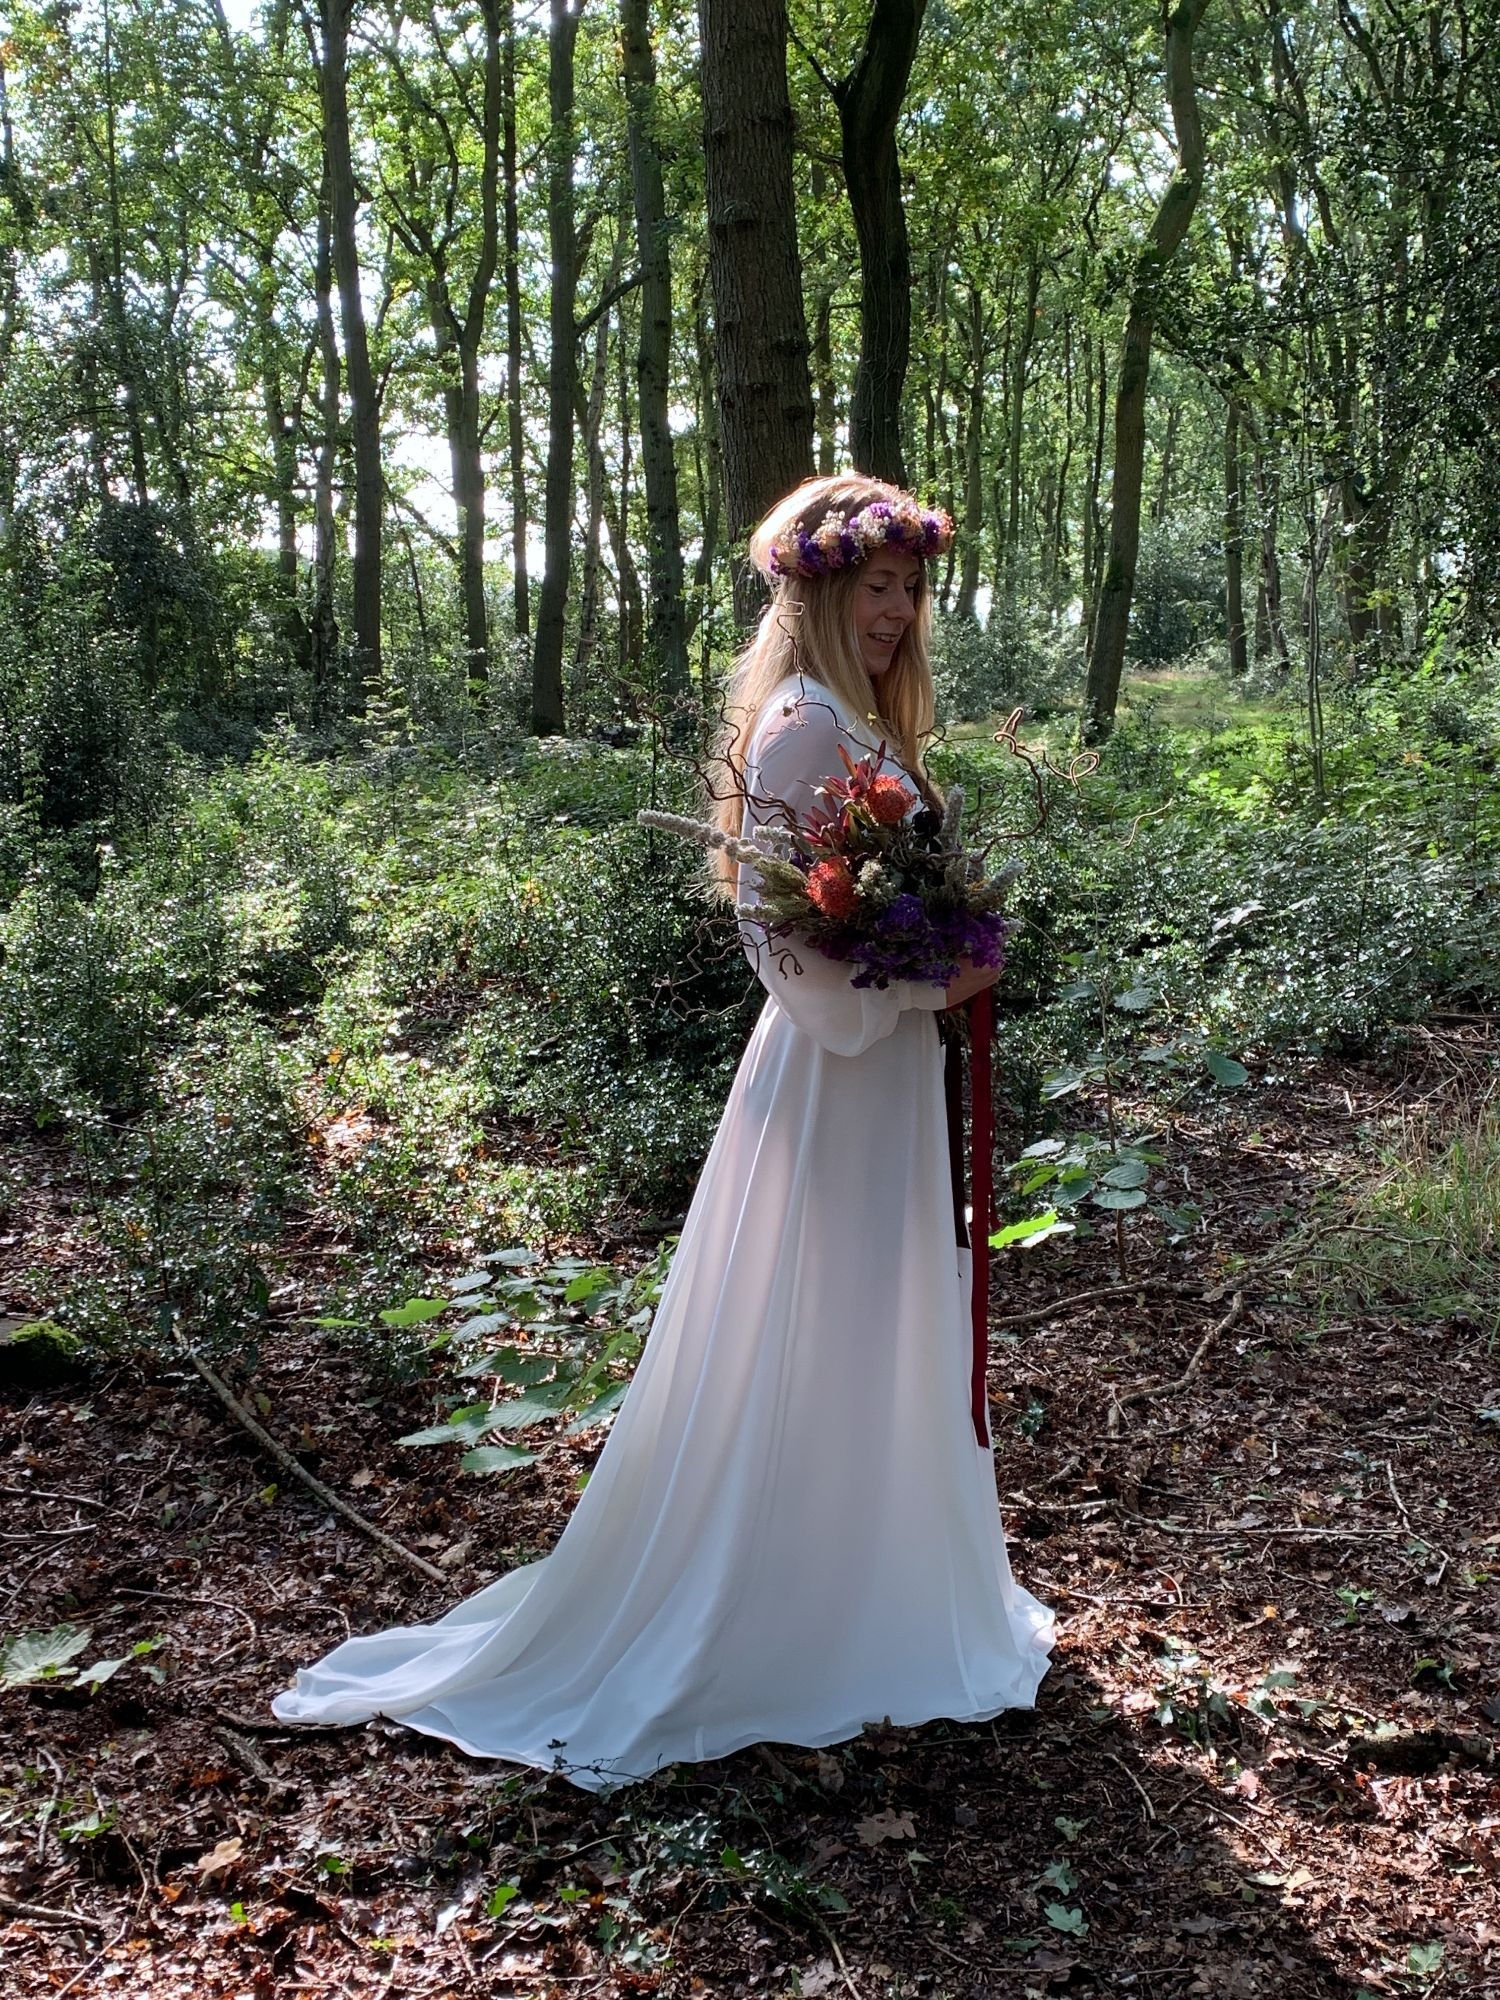 Fern_boho_wedding_dress